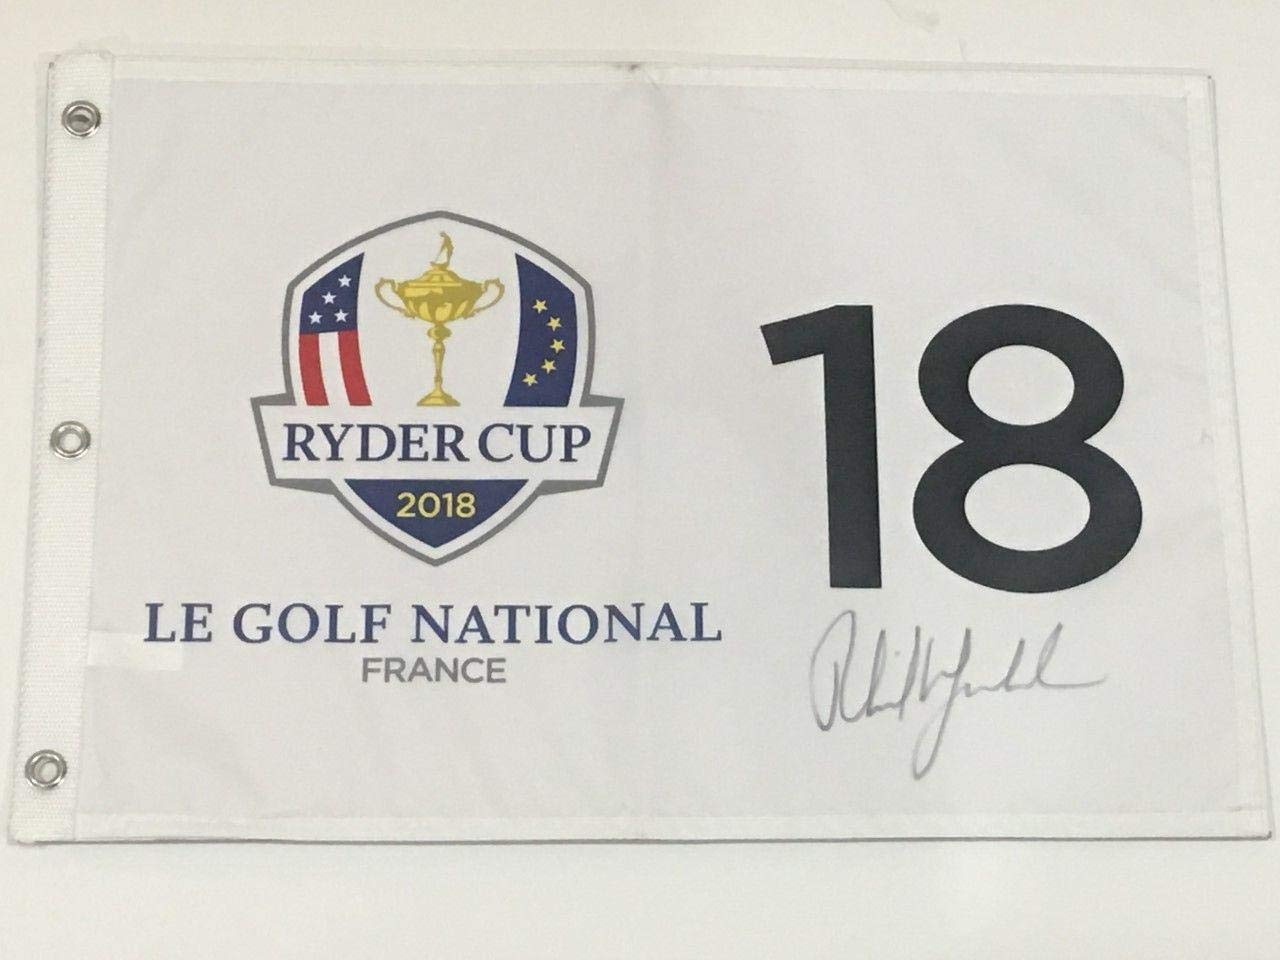 Phil Mickelson Signed 2018 Ryder Cup Flag Le Golf National France Usa Coa JSA Certified Autographed Pin Flags